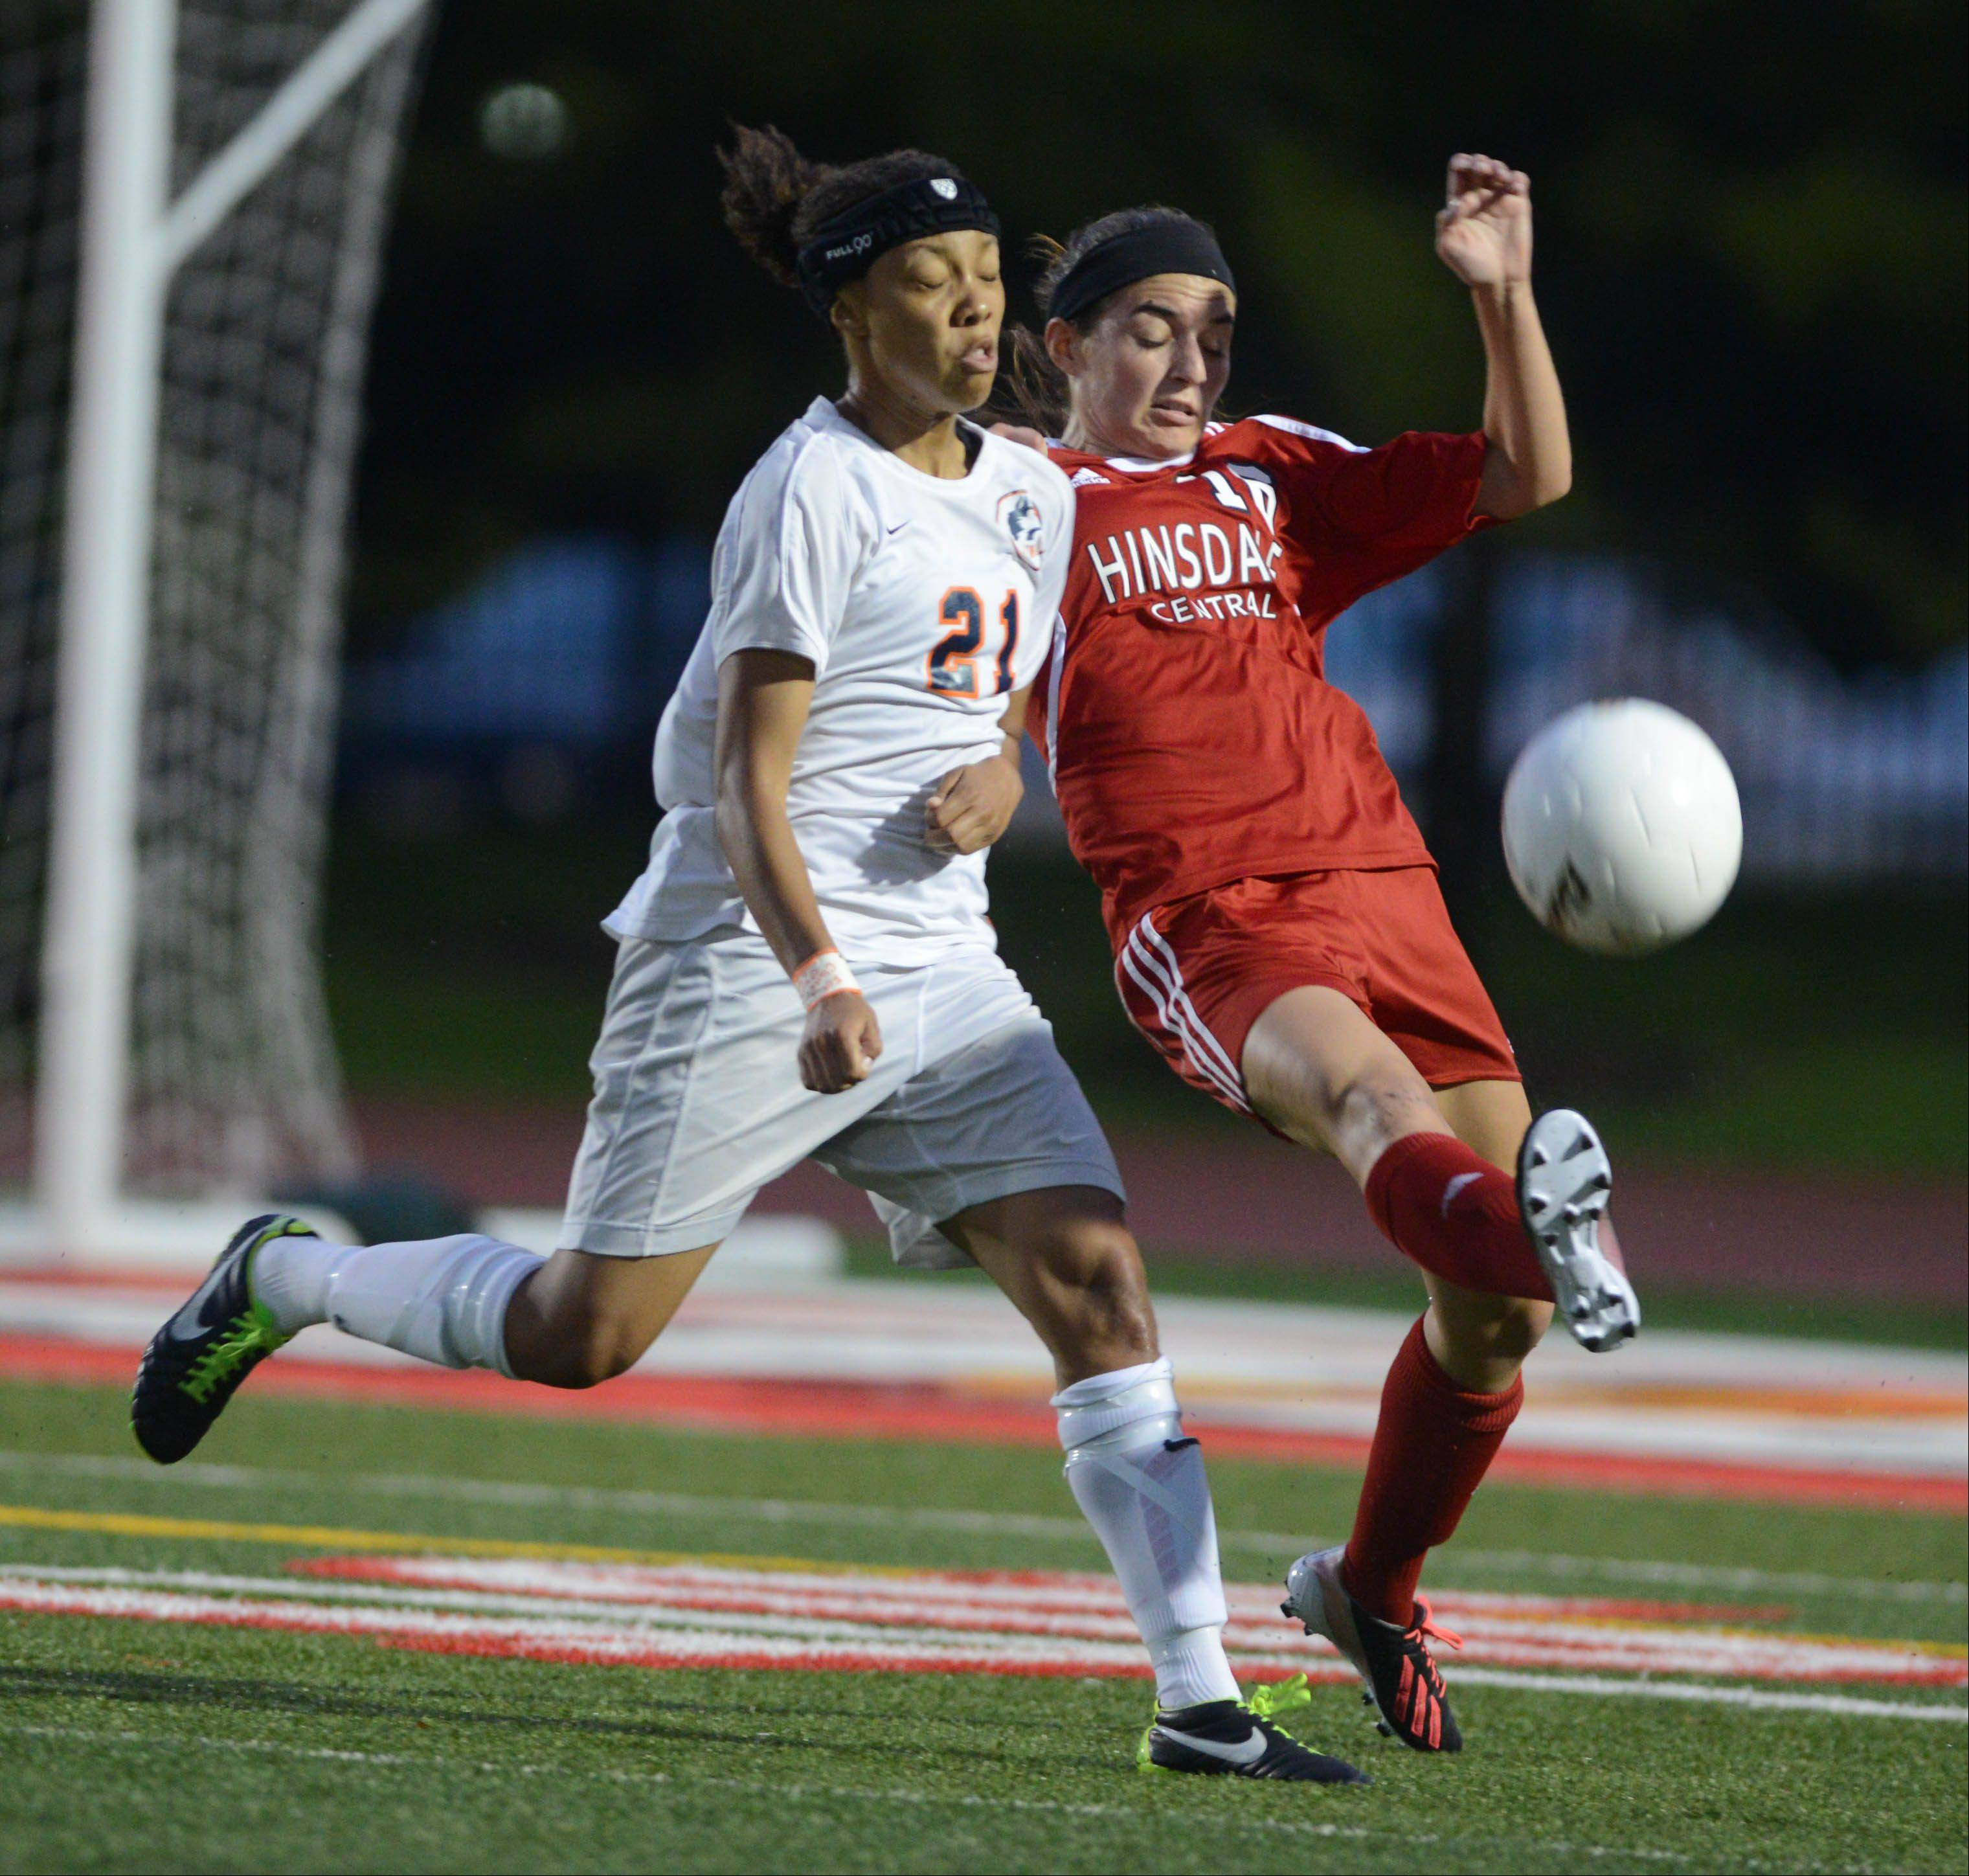 Zoe Swift,left, of Naperville North and Katherine Treankler of Hinsdale Central chase down a ball during the Class 3A girls soccer championship match in Naperville Saturday.